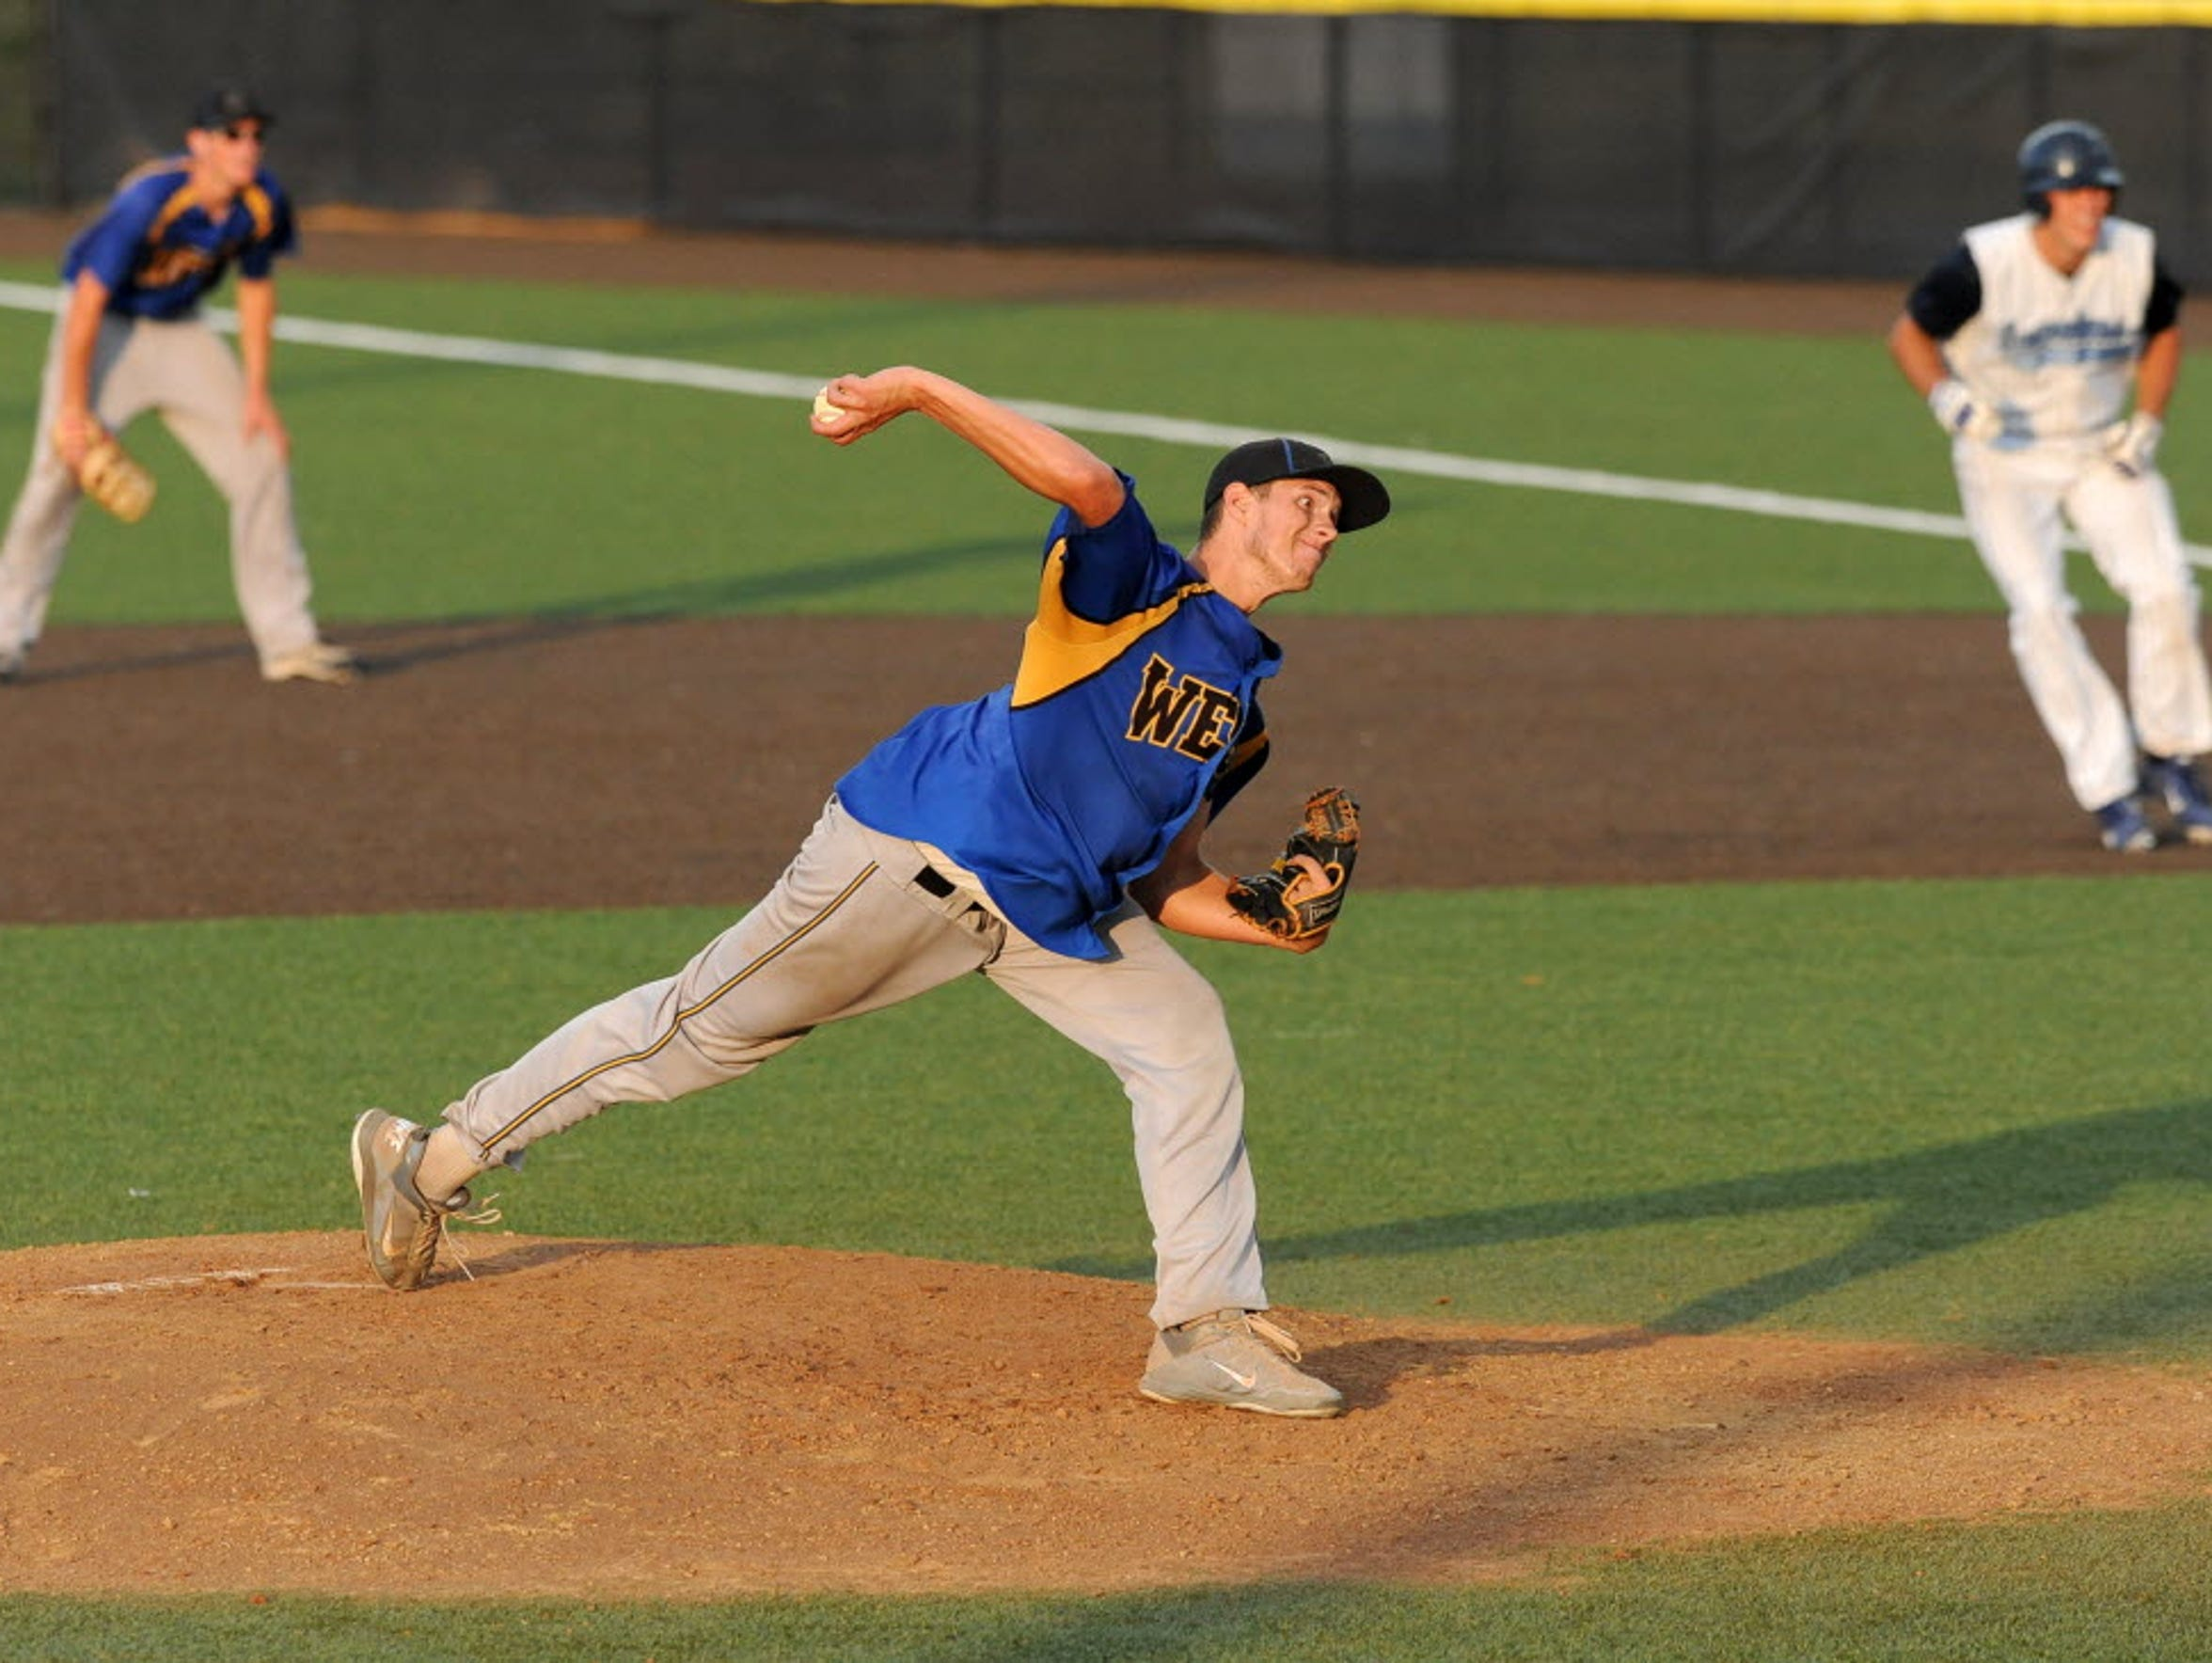 Senior Austin Fritz started the 2013 state title game against West Bend West.